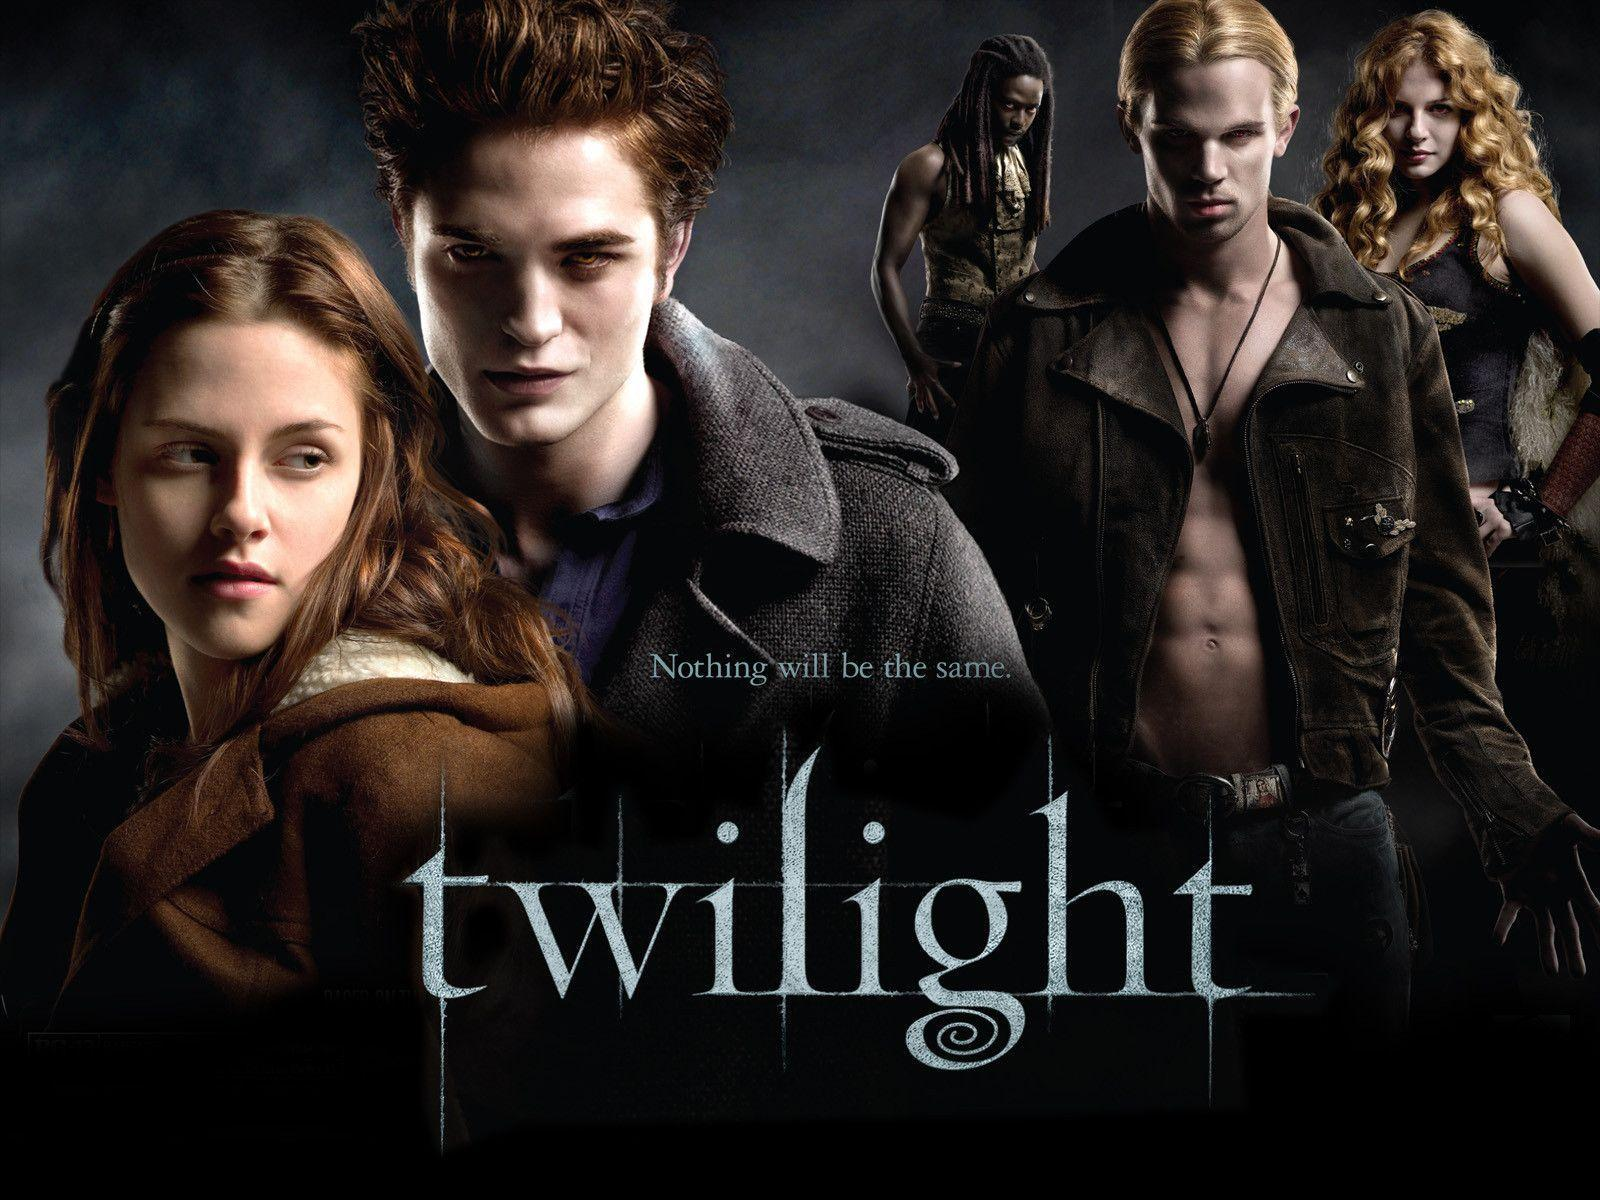 Free twilight wallpapers wallpaper cave Twilight edward photos